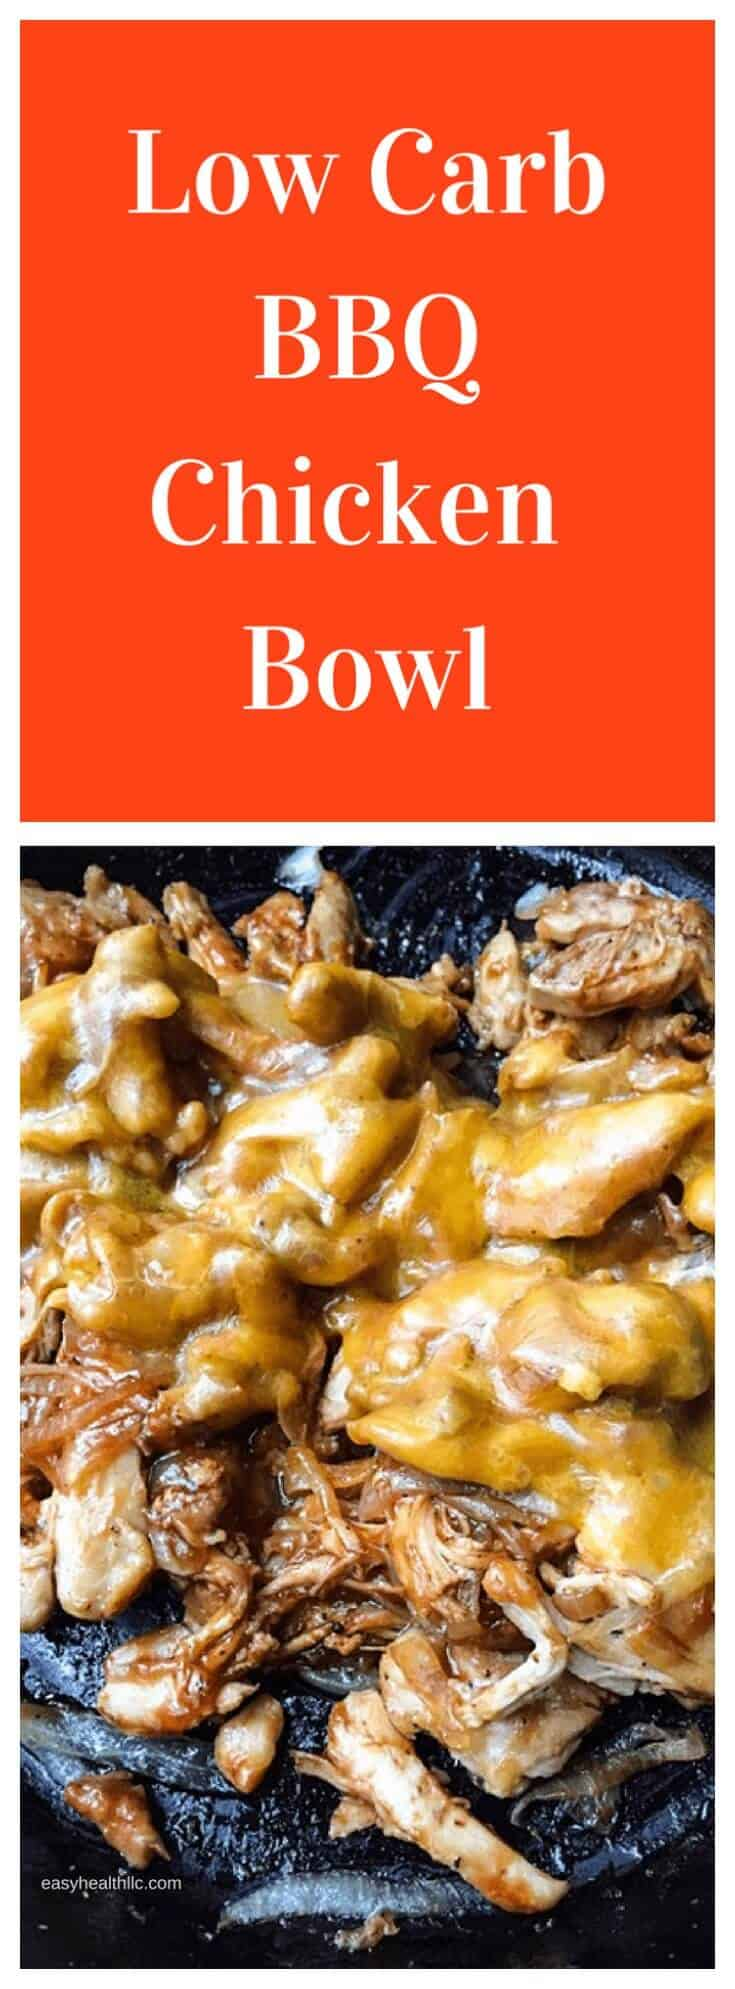 A low carb bbq chicken bowl that will please all your diners. Browned pieces of chicken and onions in a low carb bbq sauce topped with melted cheese. #bbqchicken